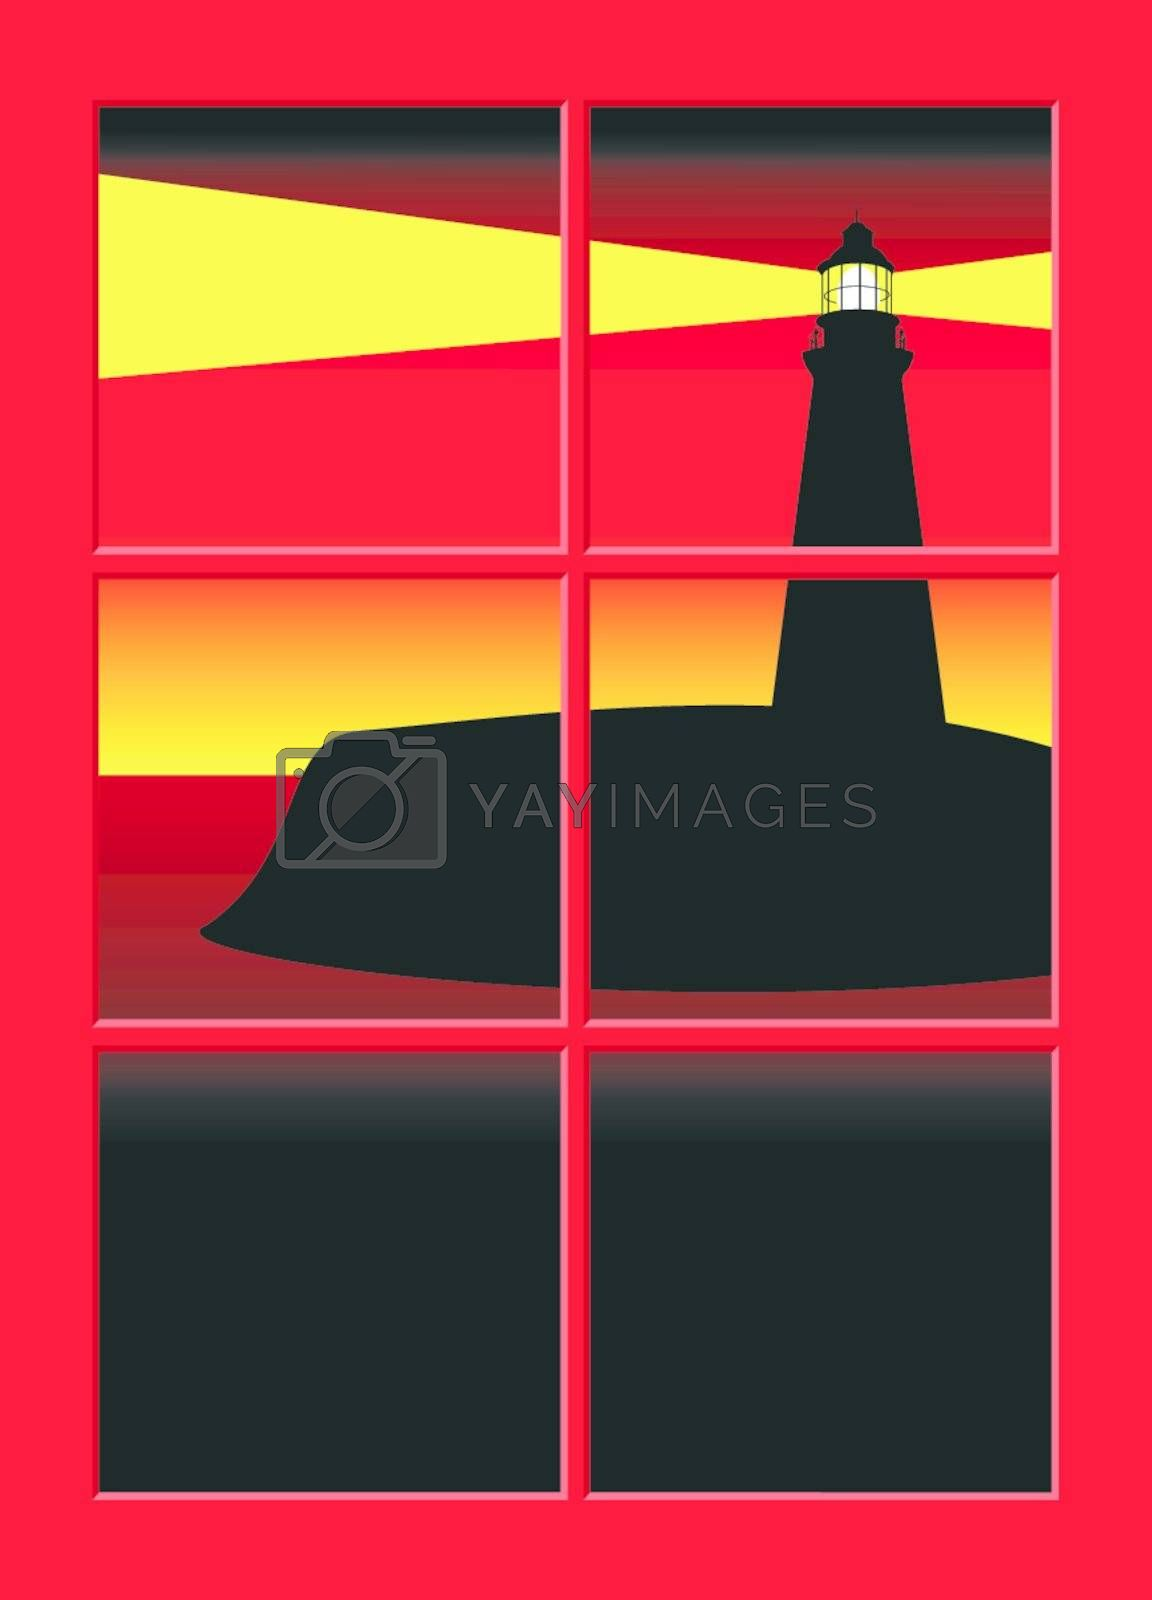 Illustration of a lighthouse seen through a window at sunset